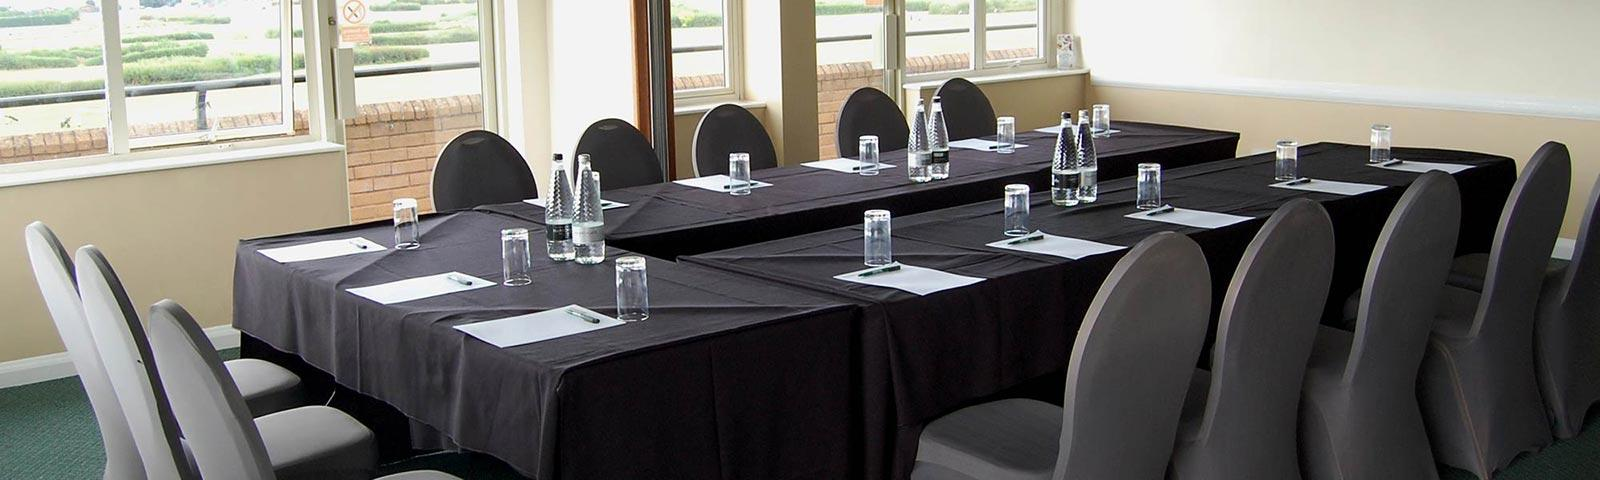 Meeting room set up with a table and chairs.